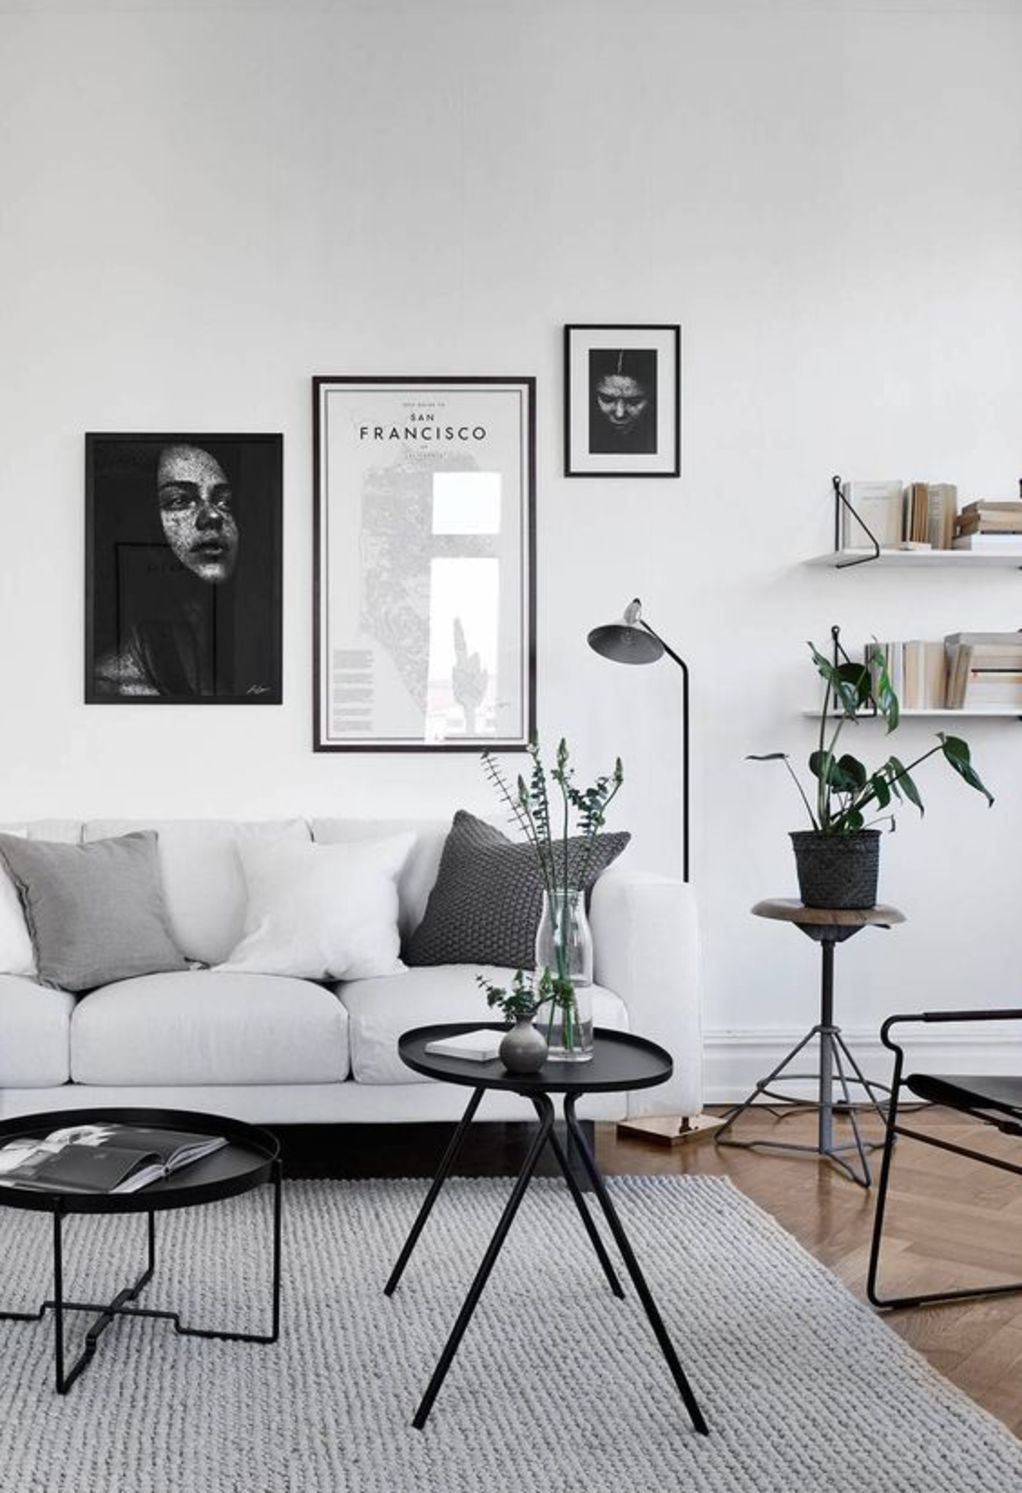 Minimal Interior Design Inspiration 47 Minimalist Living Room Decor Living Room Scandinavian Minimalist Living Room Design